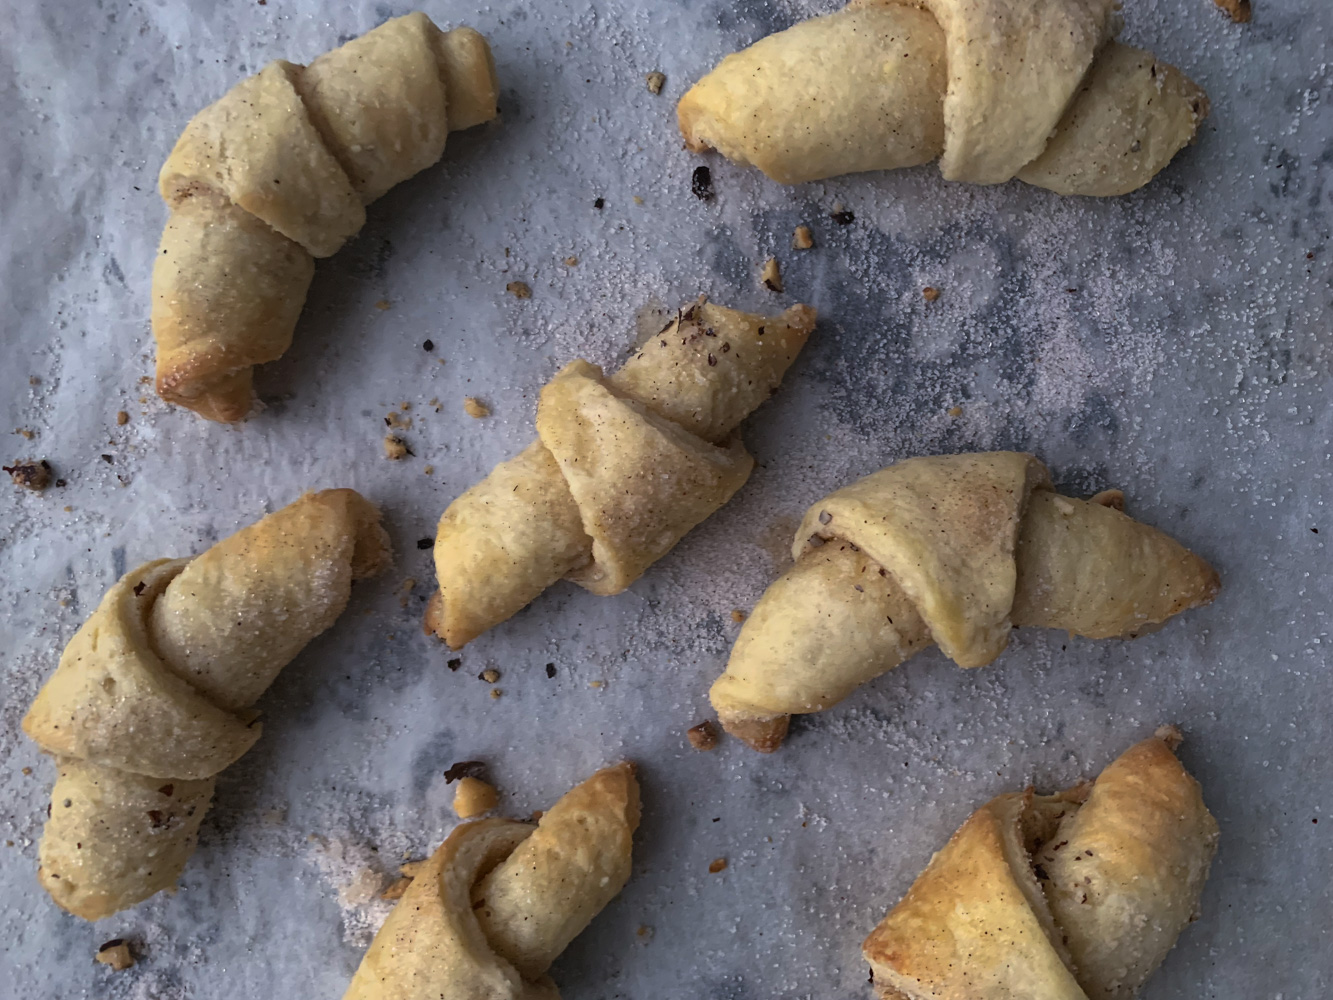 Rugelach rolled cookies with cinnamon and nuts